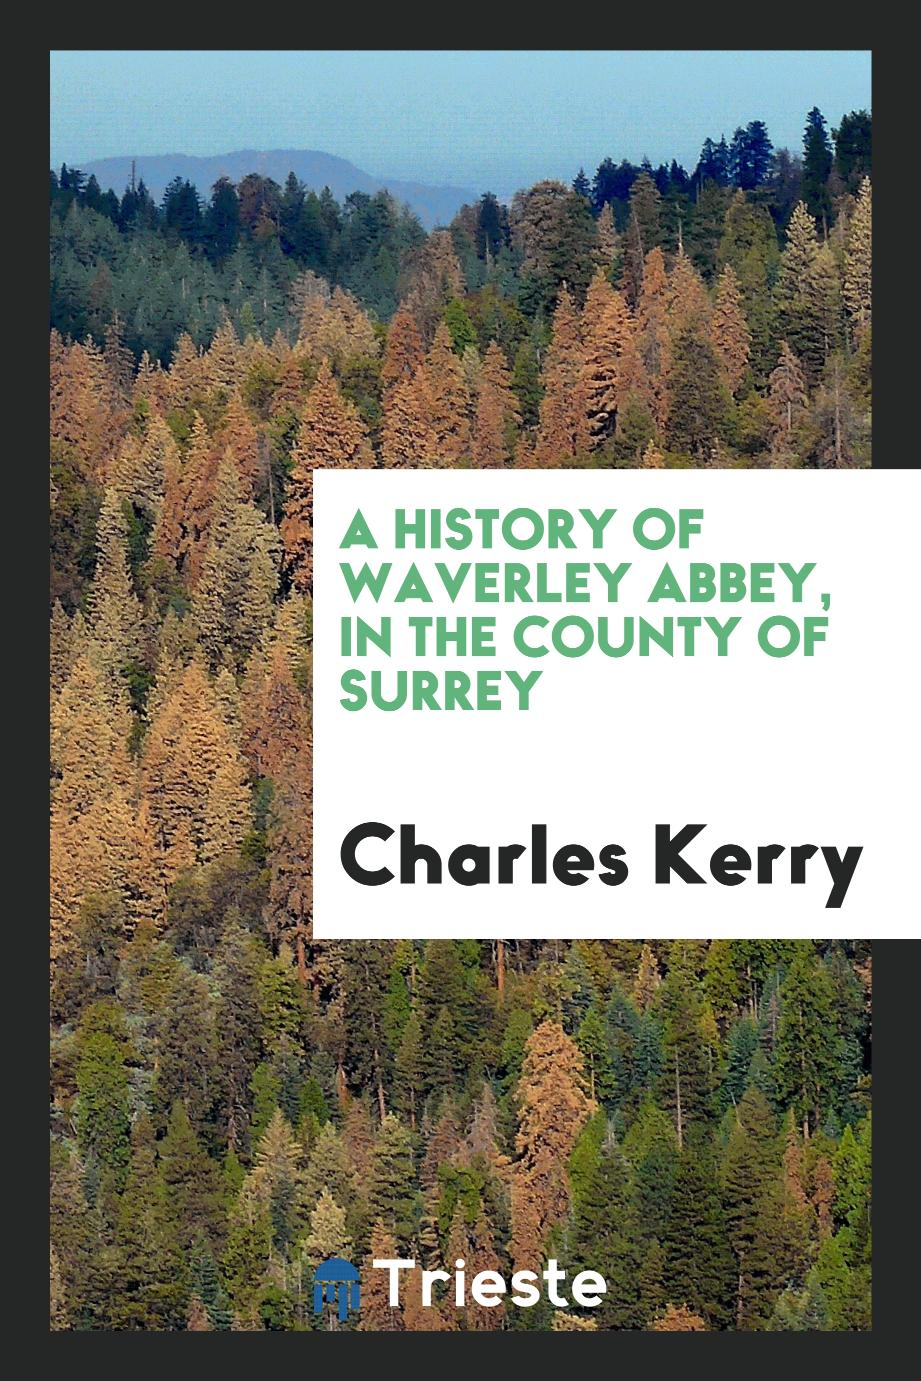 A History of Waverley Abbey, in the County of Surrey